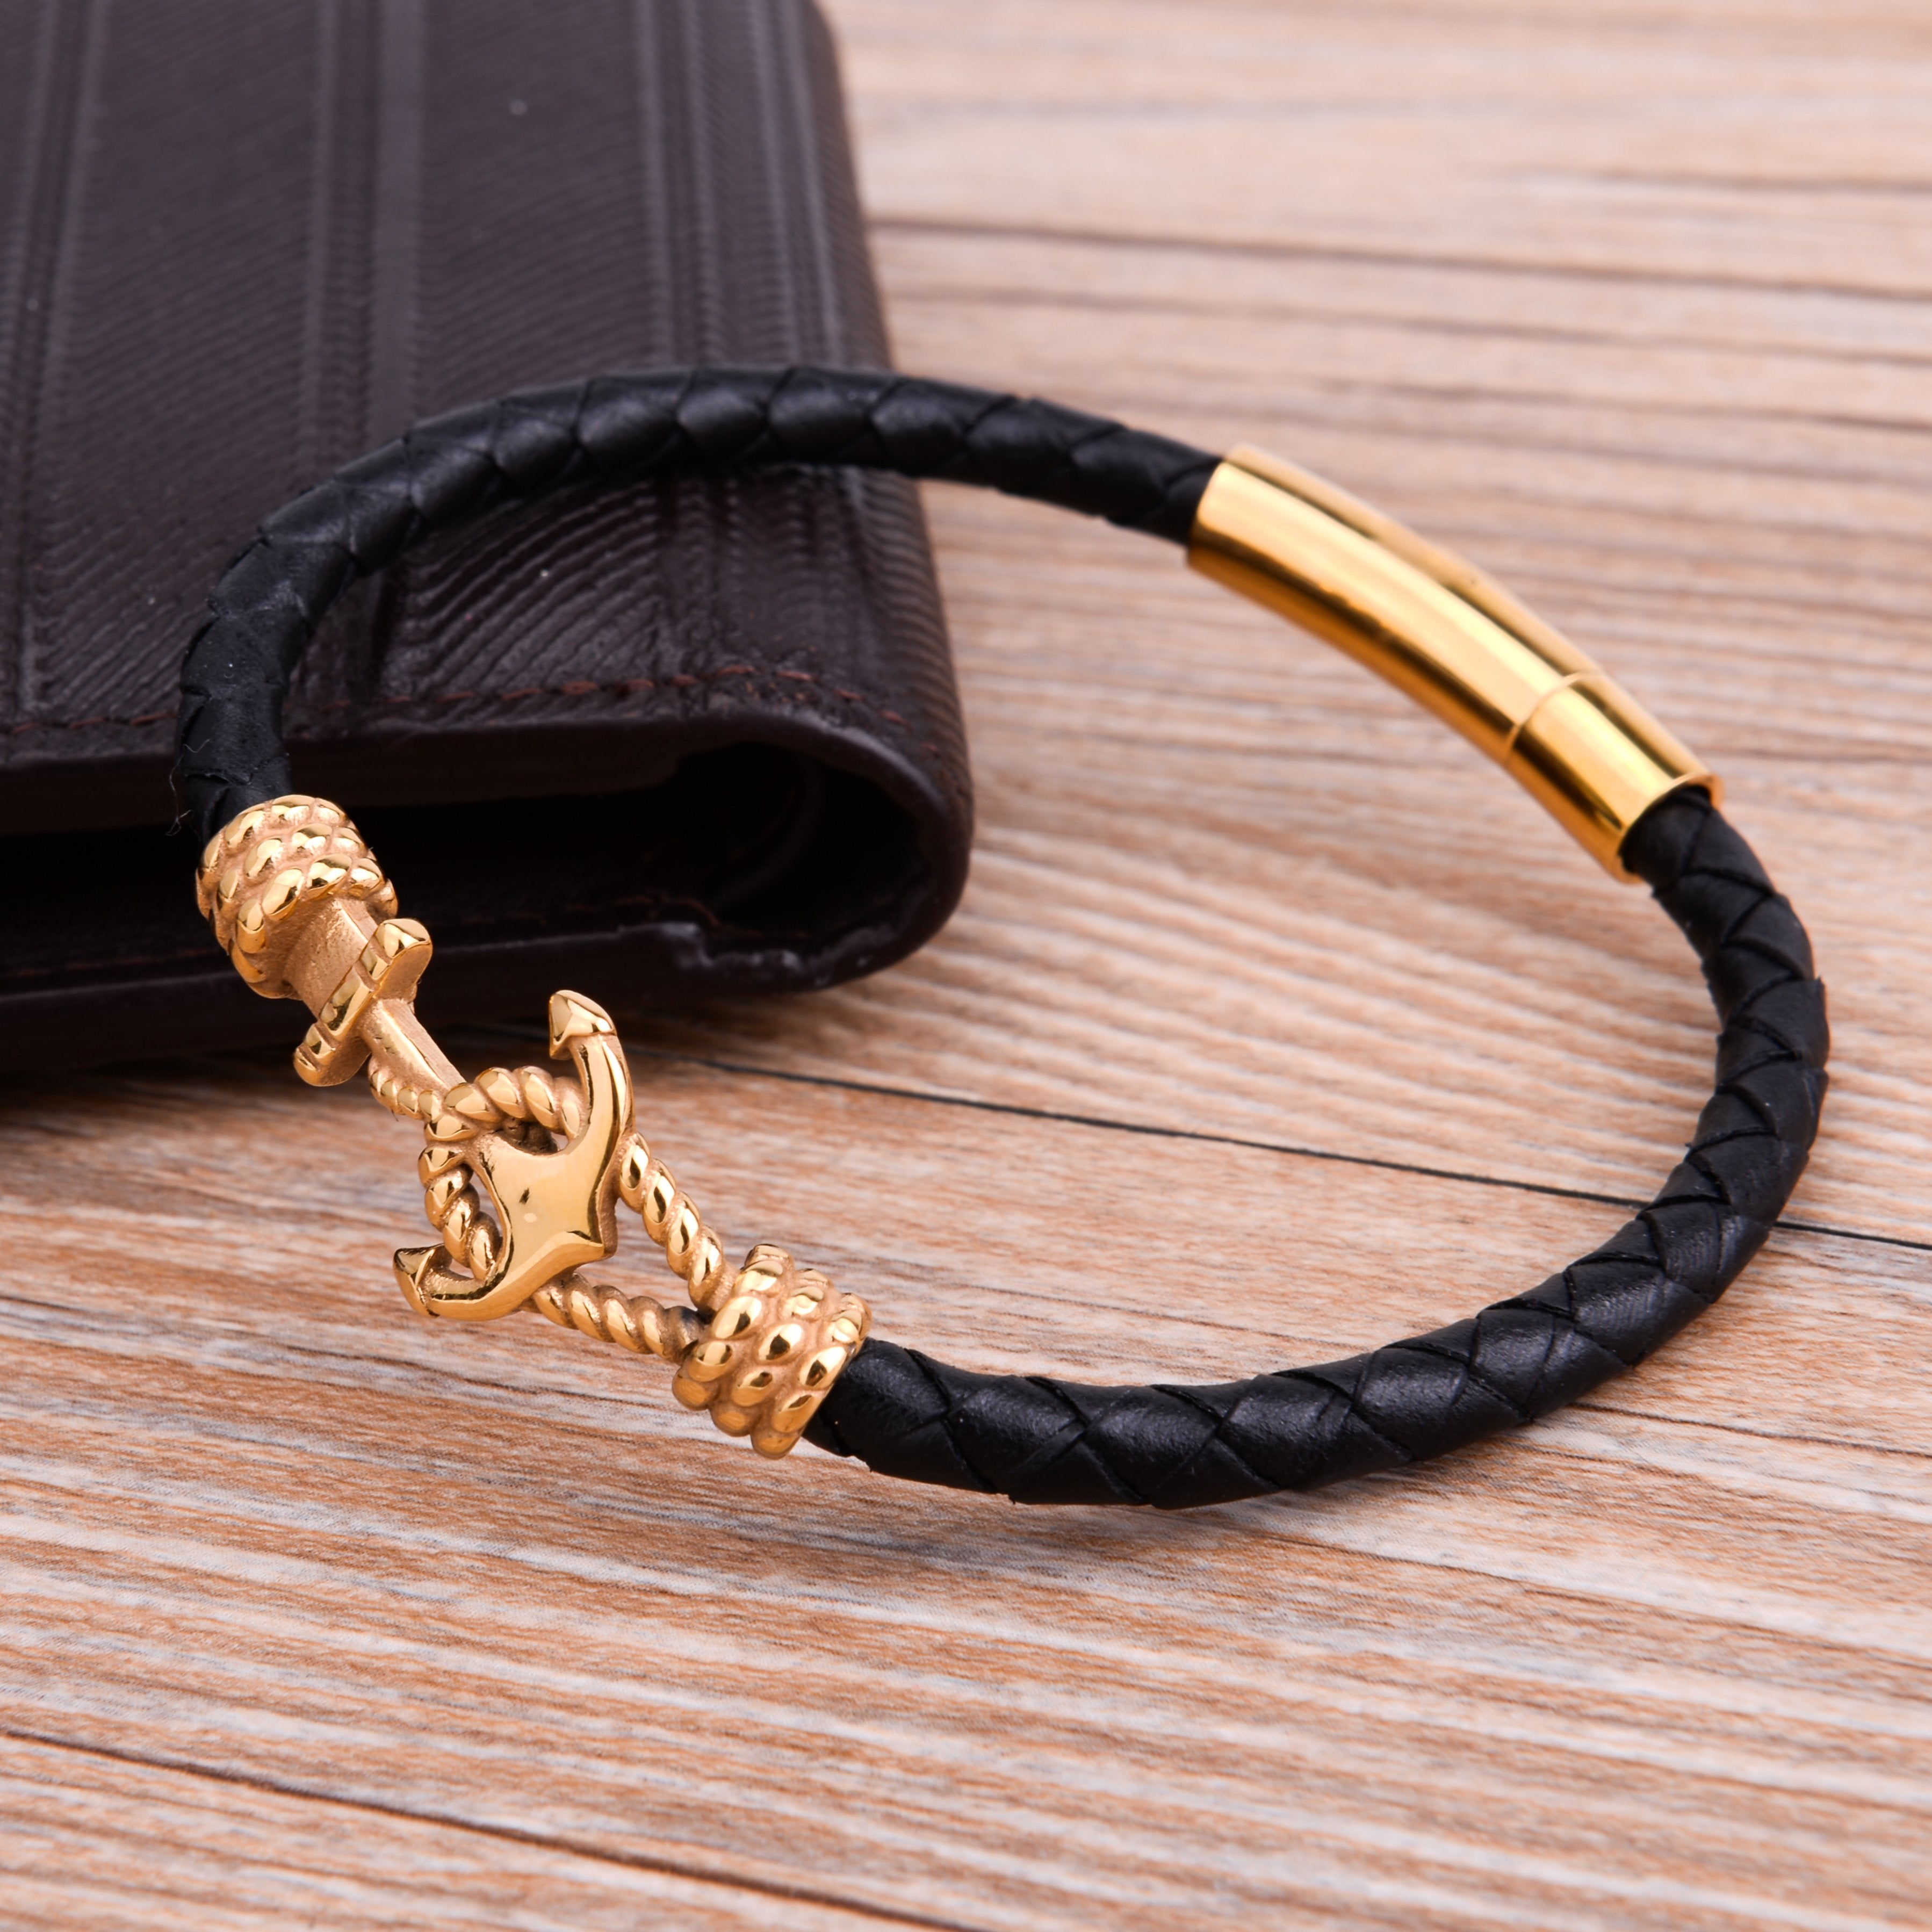 gold stainless steel bracelet sailor navy charm jewelry lord owens